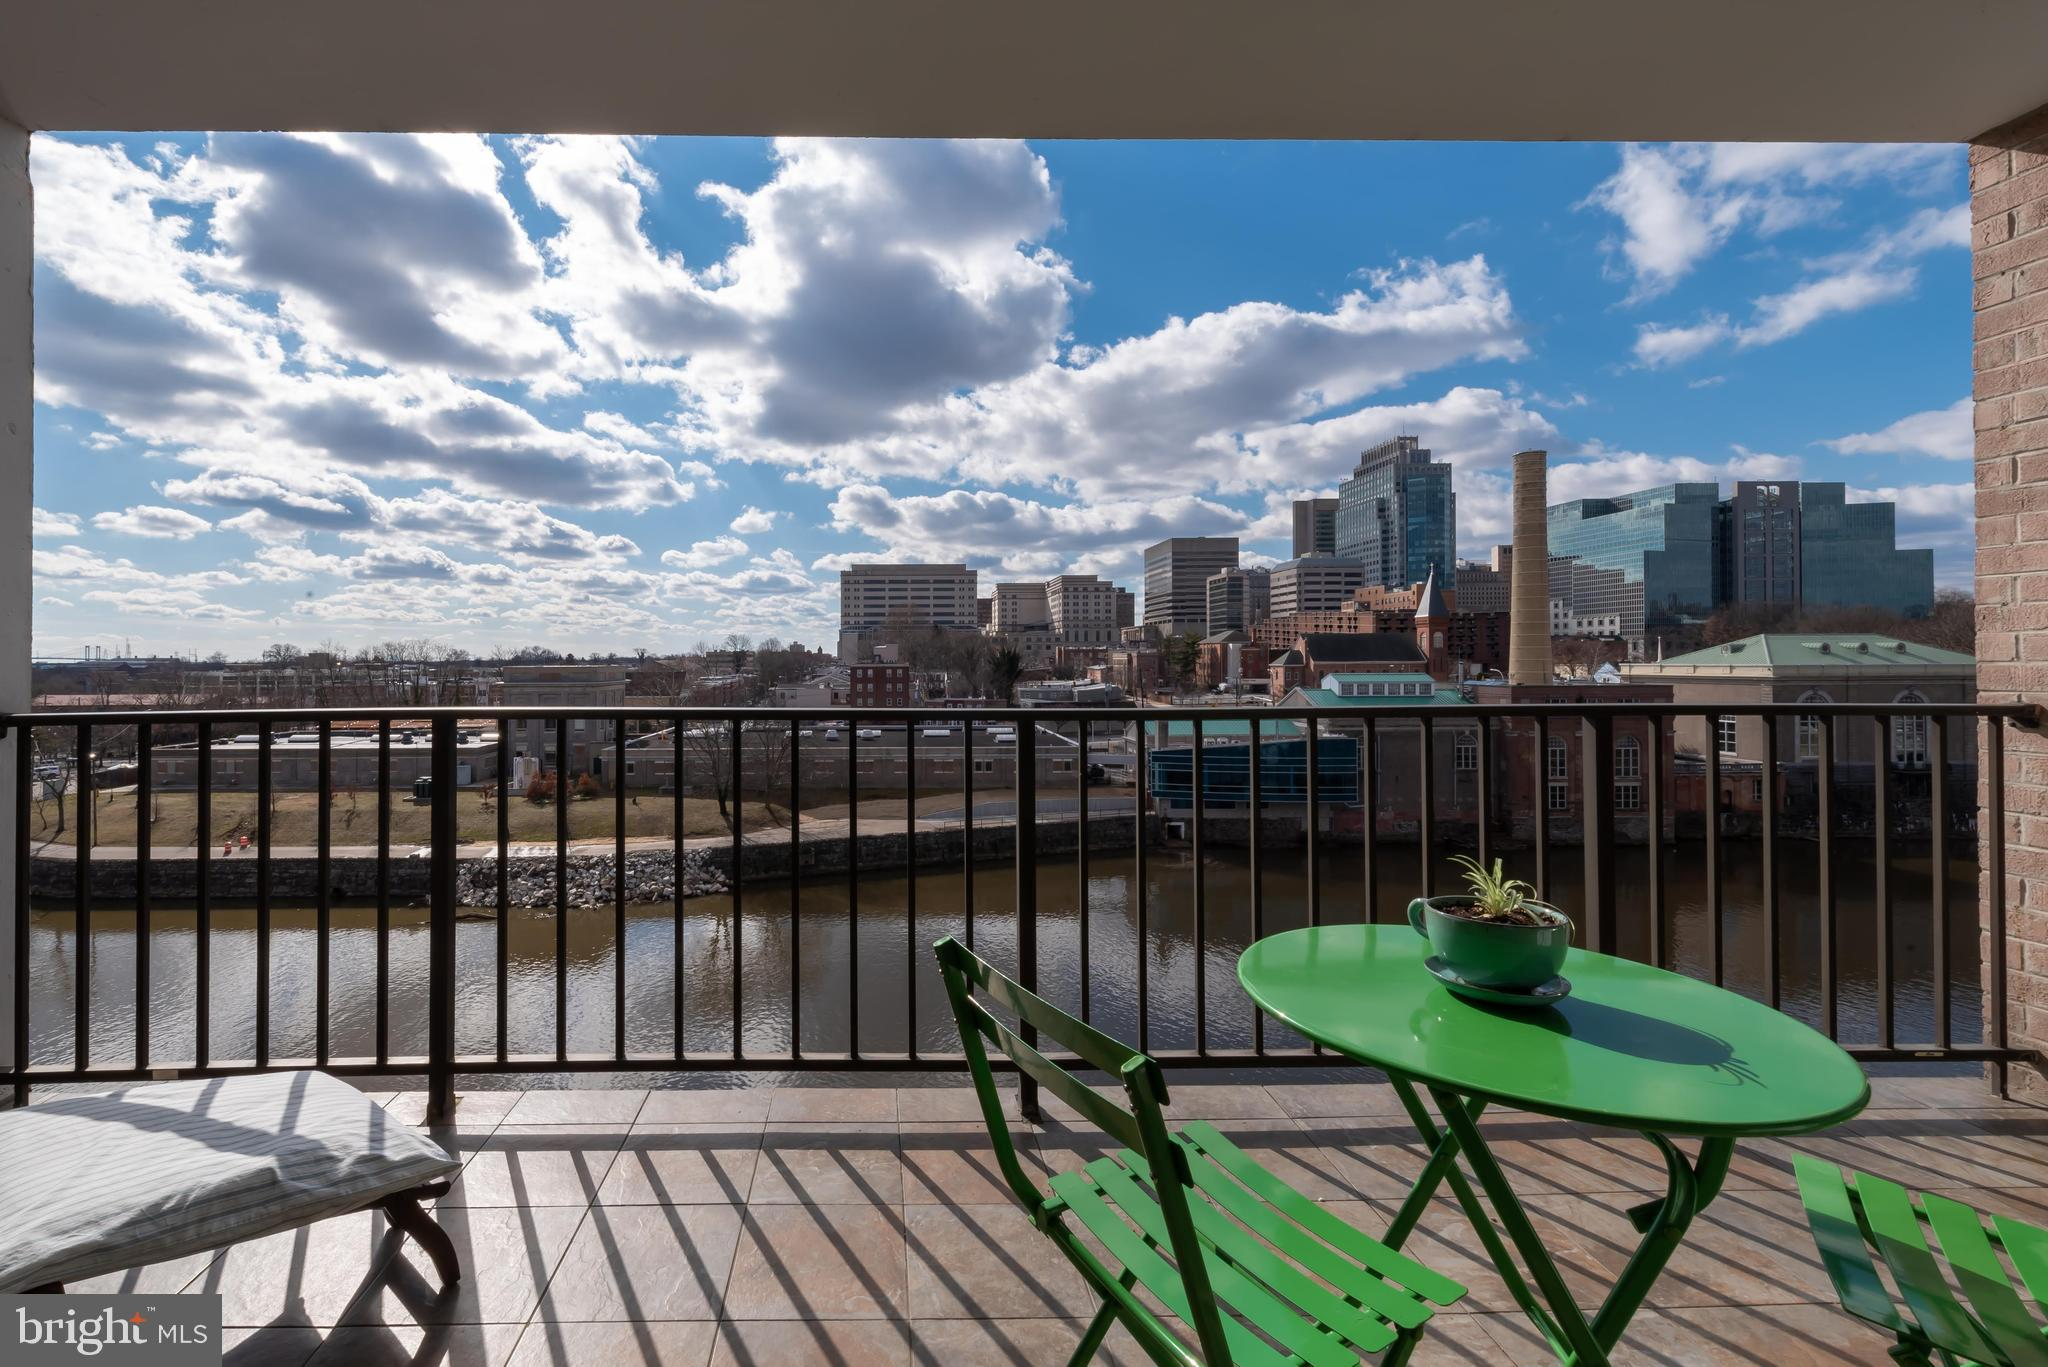 Location. Luxury. Lifestyle. Welcome to secured, private 1980 Superfine Lane Unit #503, 3 Bed/2.5 bath condo, where incredible panoramic Brandywine River views are the backdrop for everyday living. Surroundings are scenic! Take morning run along Brandywine River, relax on bench and read in park, walk the zoo, and appreciate fresh air and ever-changing scenery without picking up your car keys. Multiple civic groups bring vitality, involvement and revitalization to the area with exciting new projects. There are new-trend restaurants in the city and diverse entertainment downtown. Poised at the city edge, it's at your fingertips including mins. to I-95! Step inside to wide, warm and welcoming foyer with gorgeous slate floors, 2 roomy closets opposite each other creating balance, and views straight through to glass sliders on back wall leading to balcony and skyline. Appreciate 1-level, low-maintenance, circular floorplan, fluid, flexible living! PR to left aptly combines expansive mirror with angled natural-wood vanity/storage beneath, textured walls and soft up-lighting. Off foyer is dual-door, dual-entrance BR. However, with striking built-ins this room gets an automatic bid for library/office. Slate floors transition to polished hardwood floors, and large closet offers ample storage. From foyer, step into sweeping main flex space with stunning views, and where hardwood floors stretch out to glass sliders on far wall with extraordinary square footage in between. Embrace the space! Create conversation area with artfully-arranged couches, chairs and coffee table, with space along rooms perimeter for furnishings. Capitalize on extensive wall space with favorite prints or cherished portraits. Realize that space dimensions and purpose can be altered, as needs and lifestyle change. Nice architectural element here of built-in bookcase to showcase valued novels, prized possessions, or travel treasures. Floorplan wraps to DR with impressive space for table/chairs, which are p